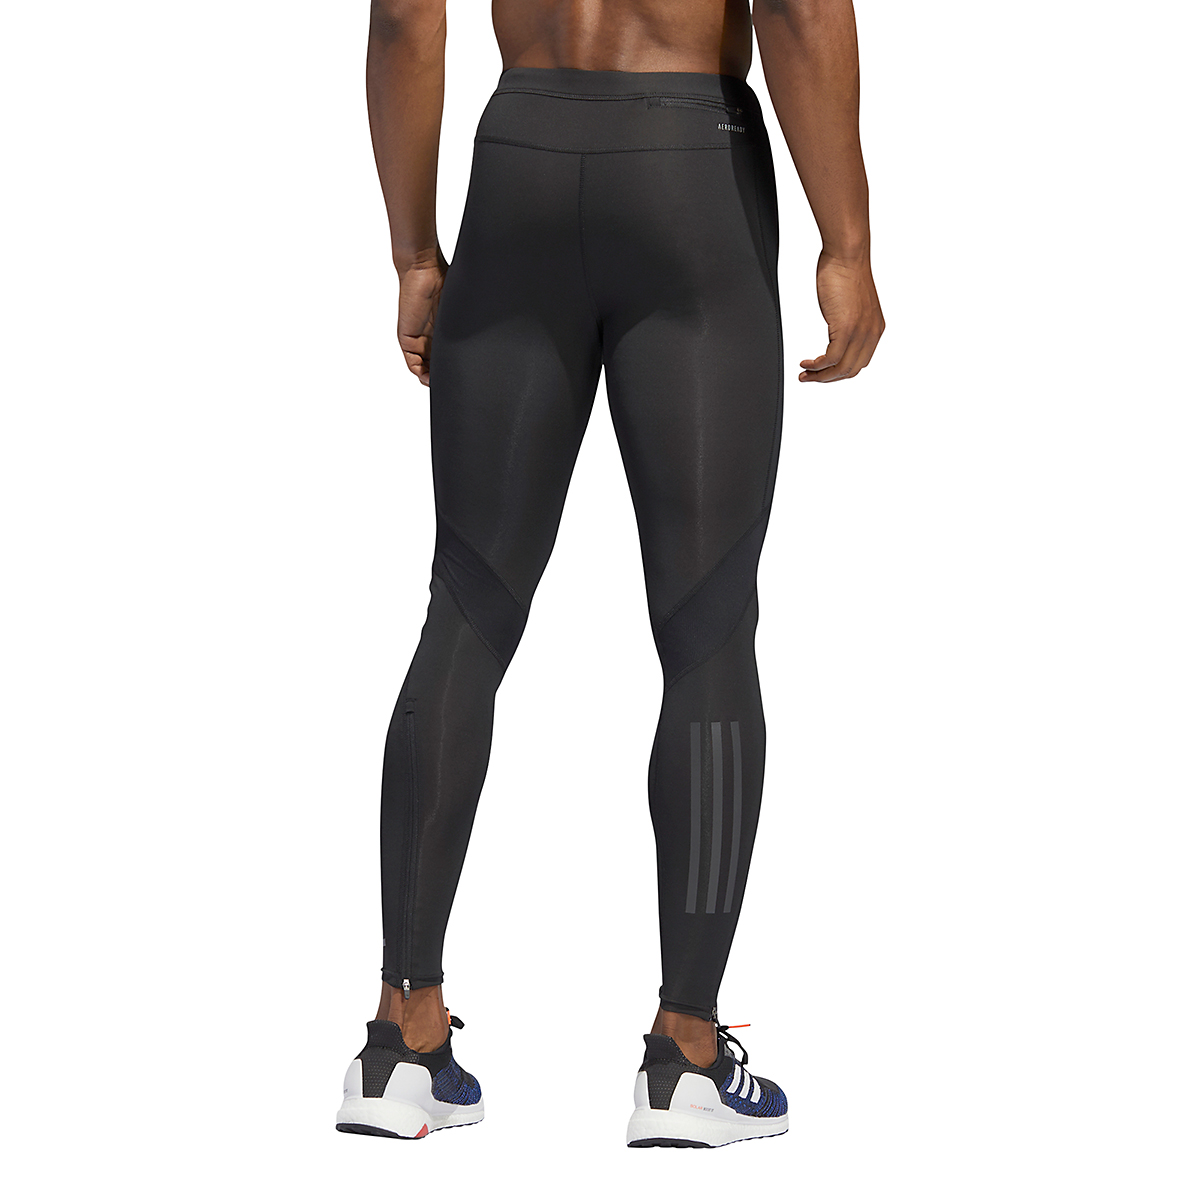 Men's Adidas Own The Run Long Tights - Color: Black - Size: XS, Black, large, image 2